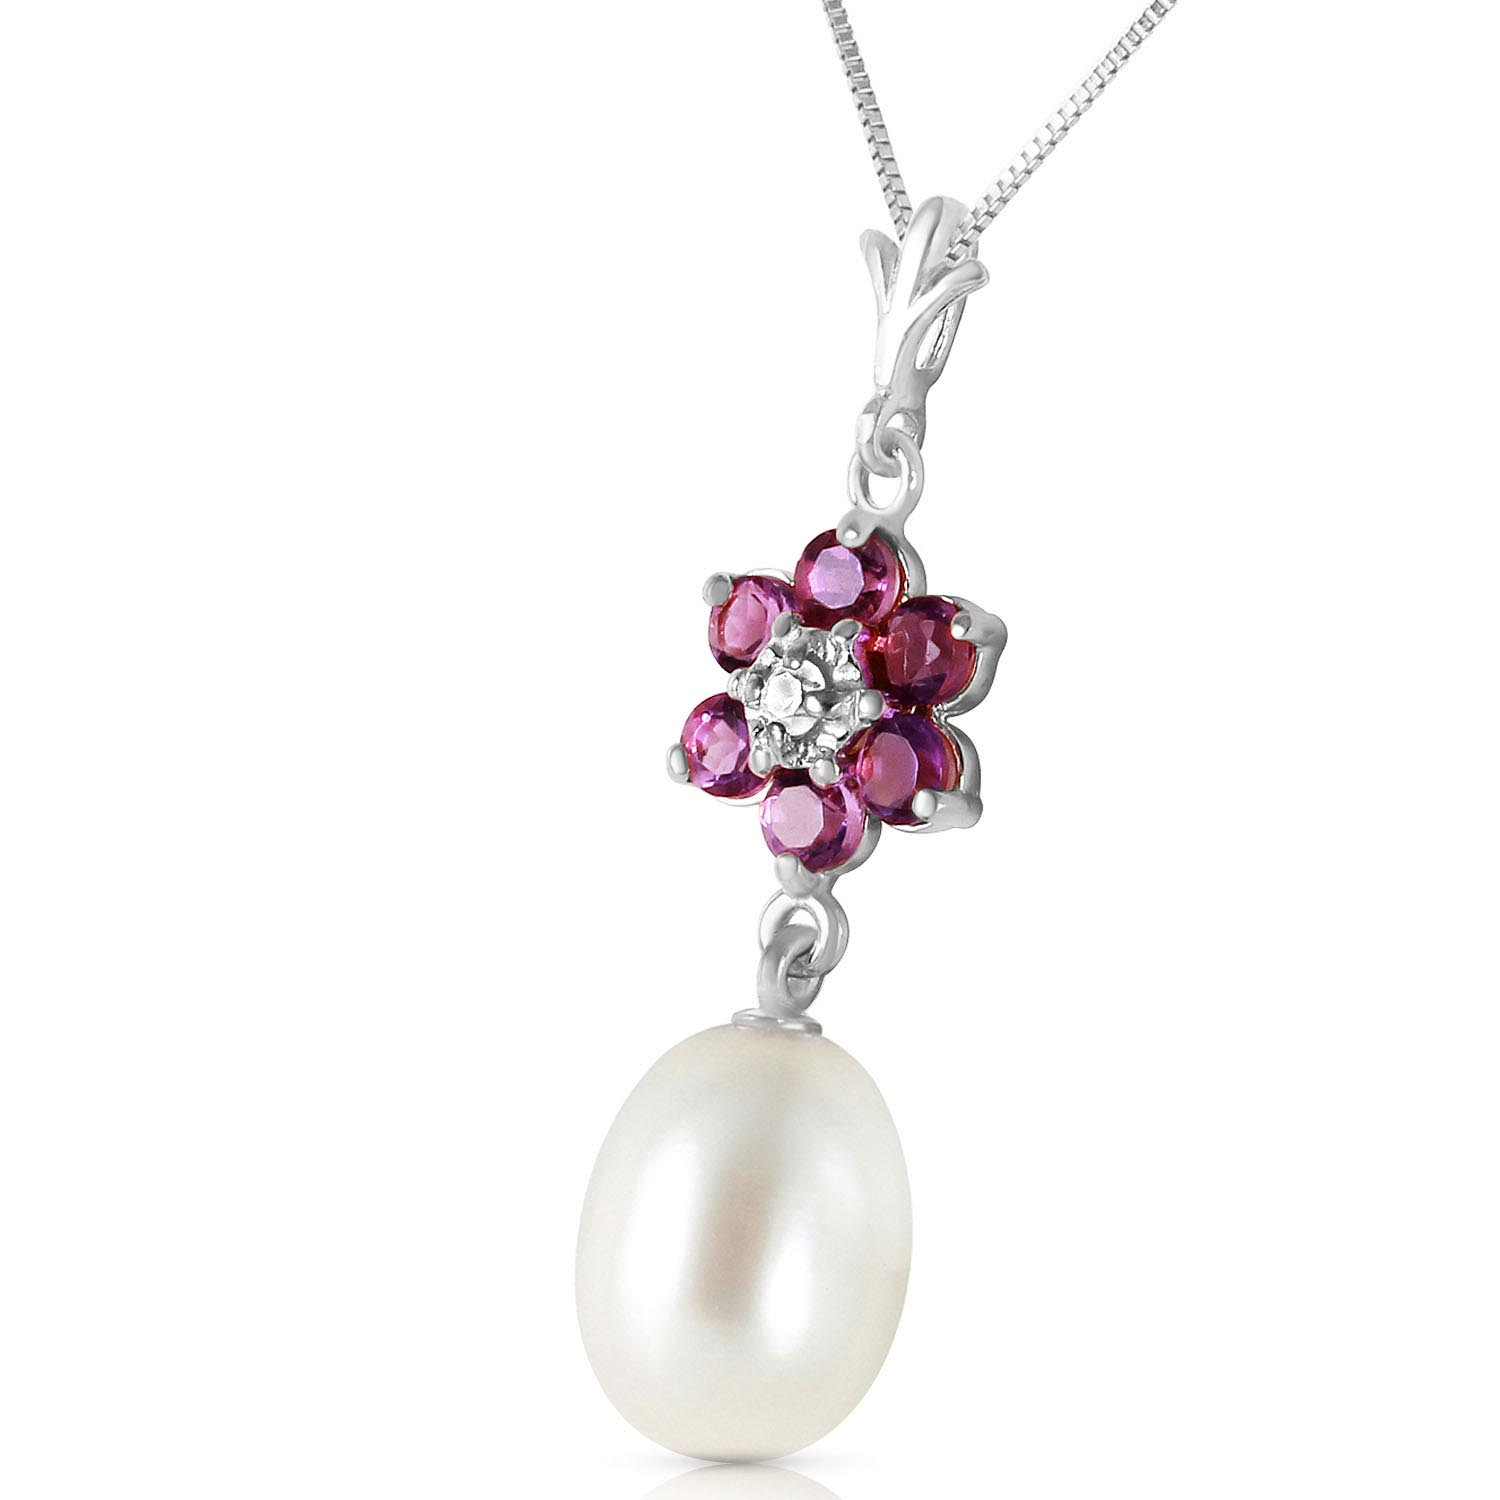 Pearl, Amethyst and Diamond Daisy Pendant Necklace 4.5ctw in 9ct White Gold